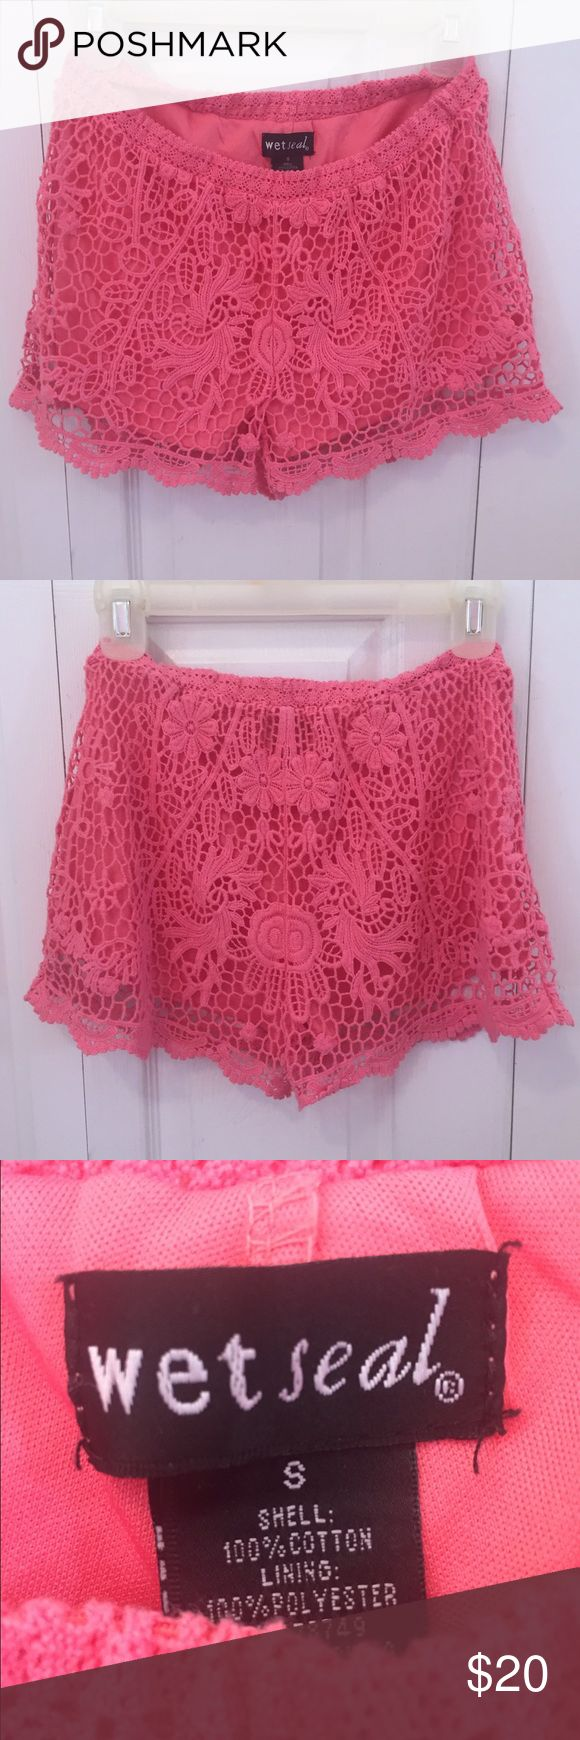 Wet Seal - Pink Crochet Lace Shorts Pink lace shorts from Wet Seal, Size Small, looks great with a cute white or black shirt Wet Seal Shorts